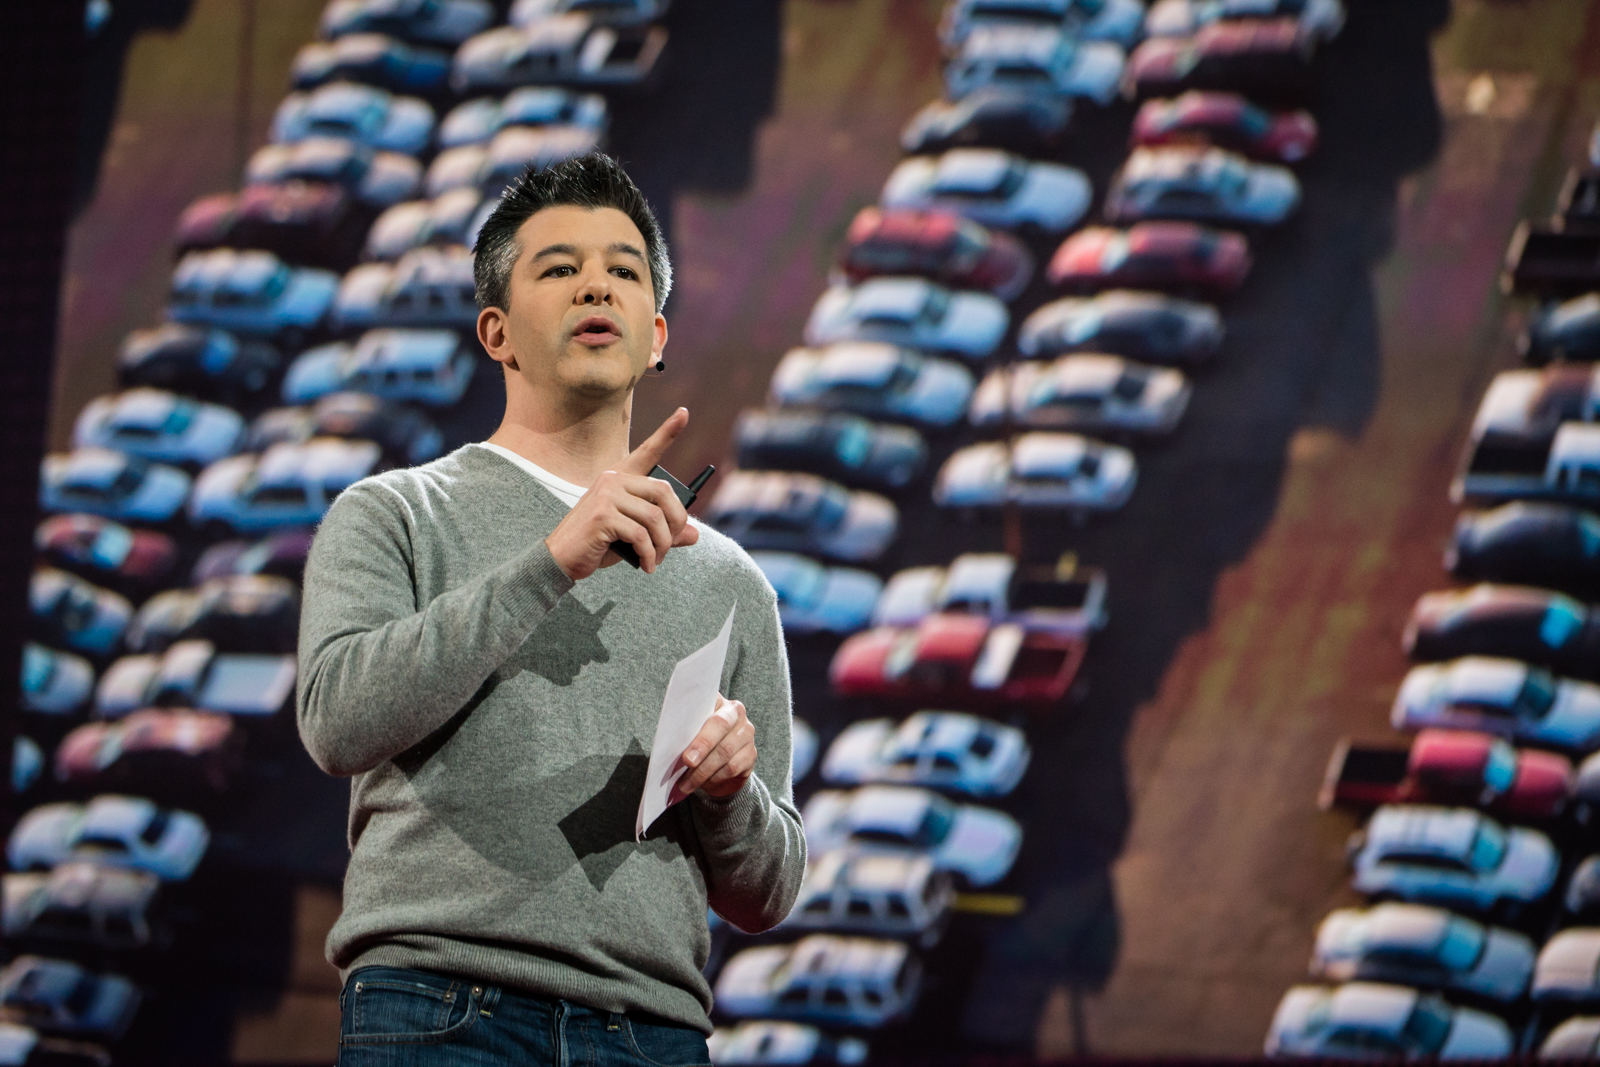 Travis Kalanick speaks at TED2016 - Dream, February 15-19, 2016, Vancouver Convention Center, Vancouver, Canada. Photo: Bret Hartman / TED